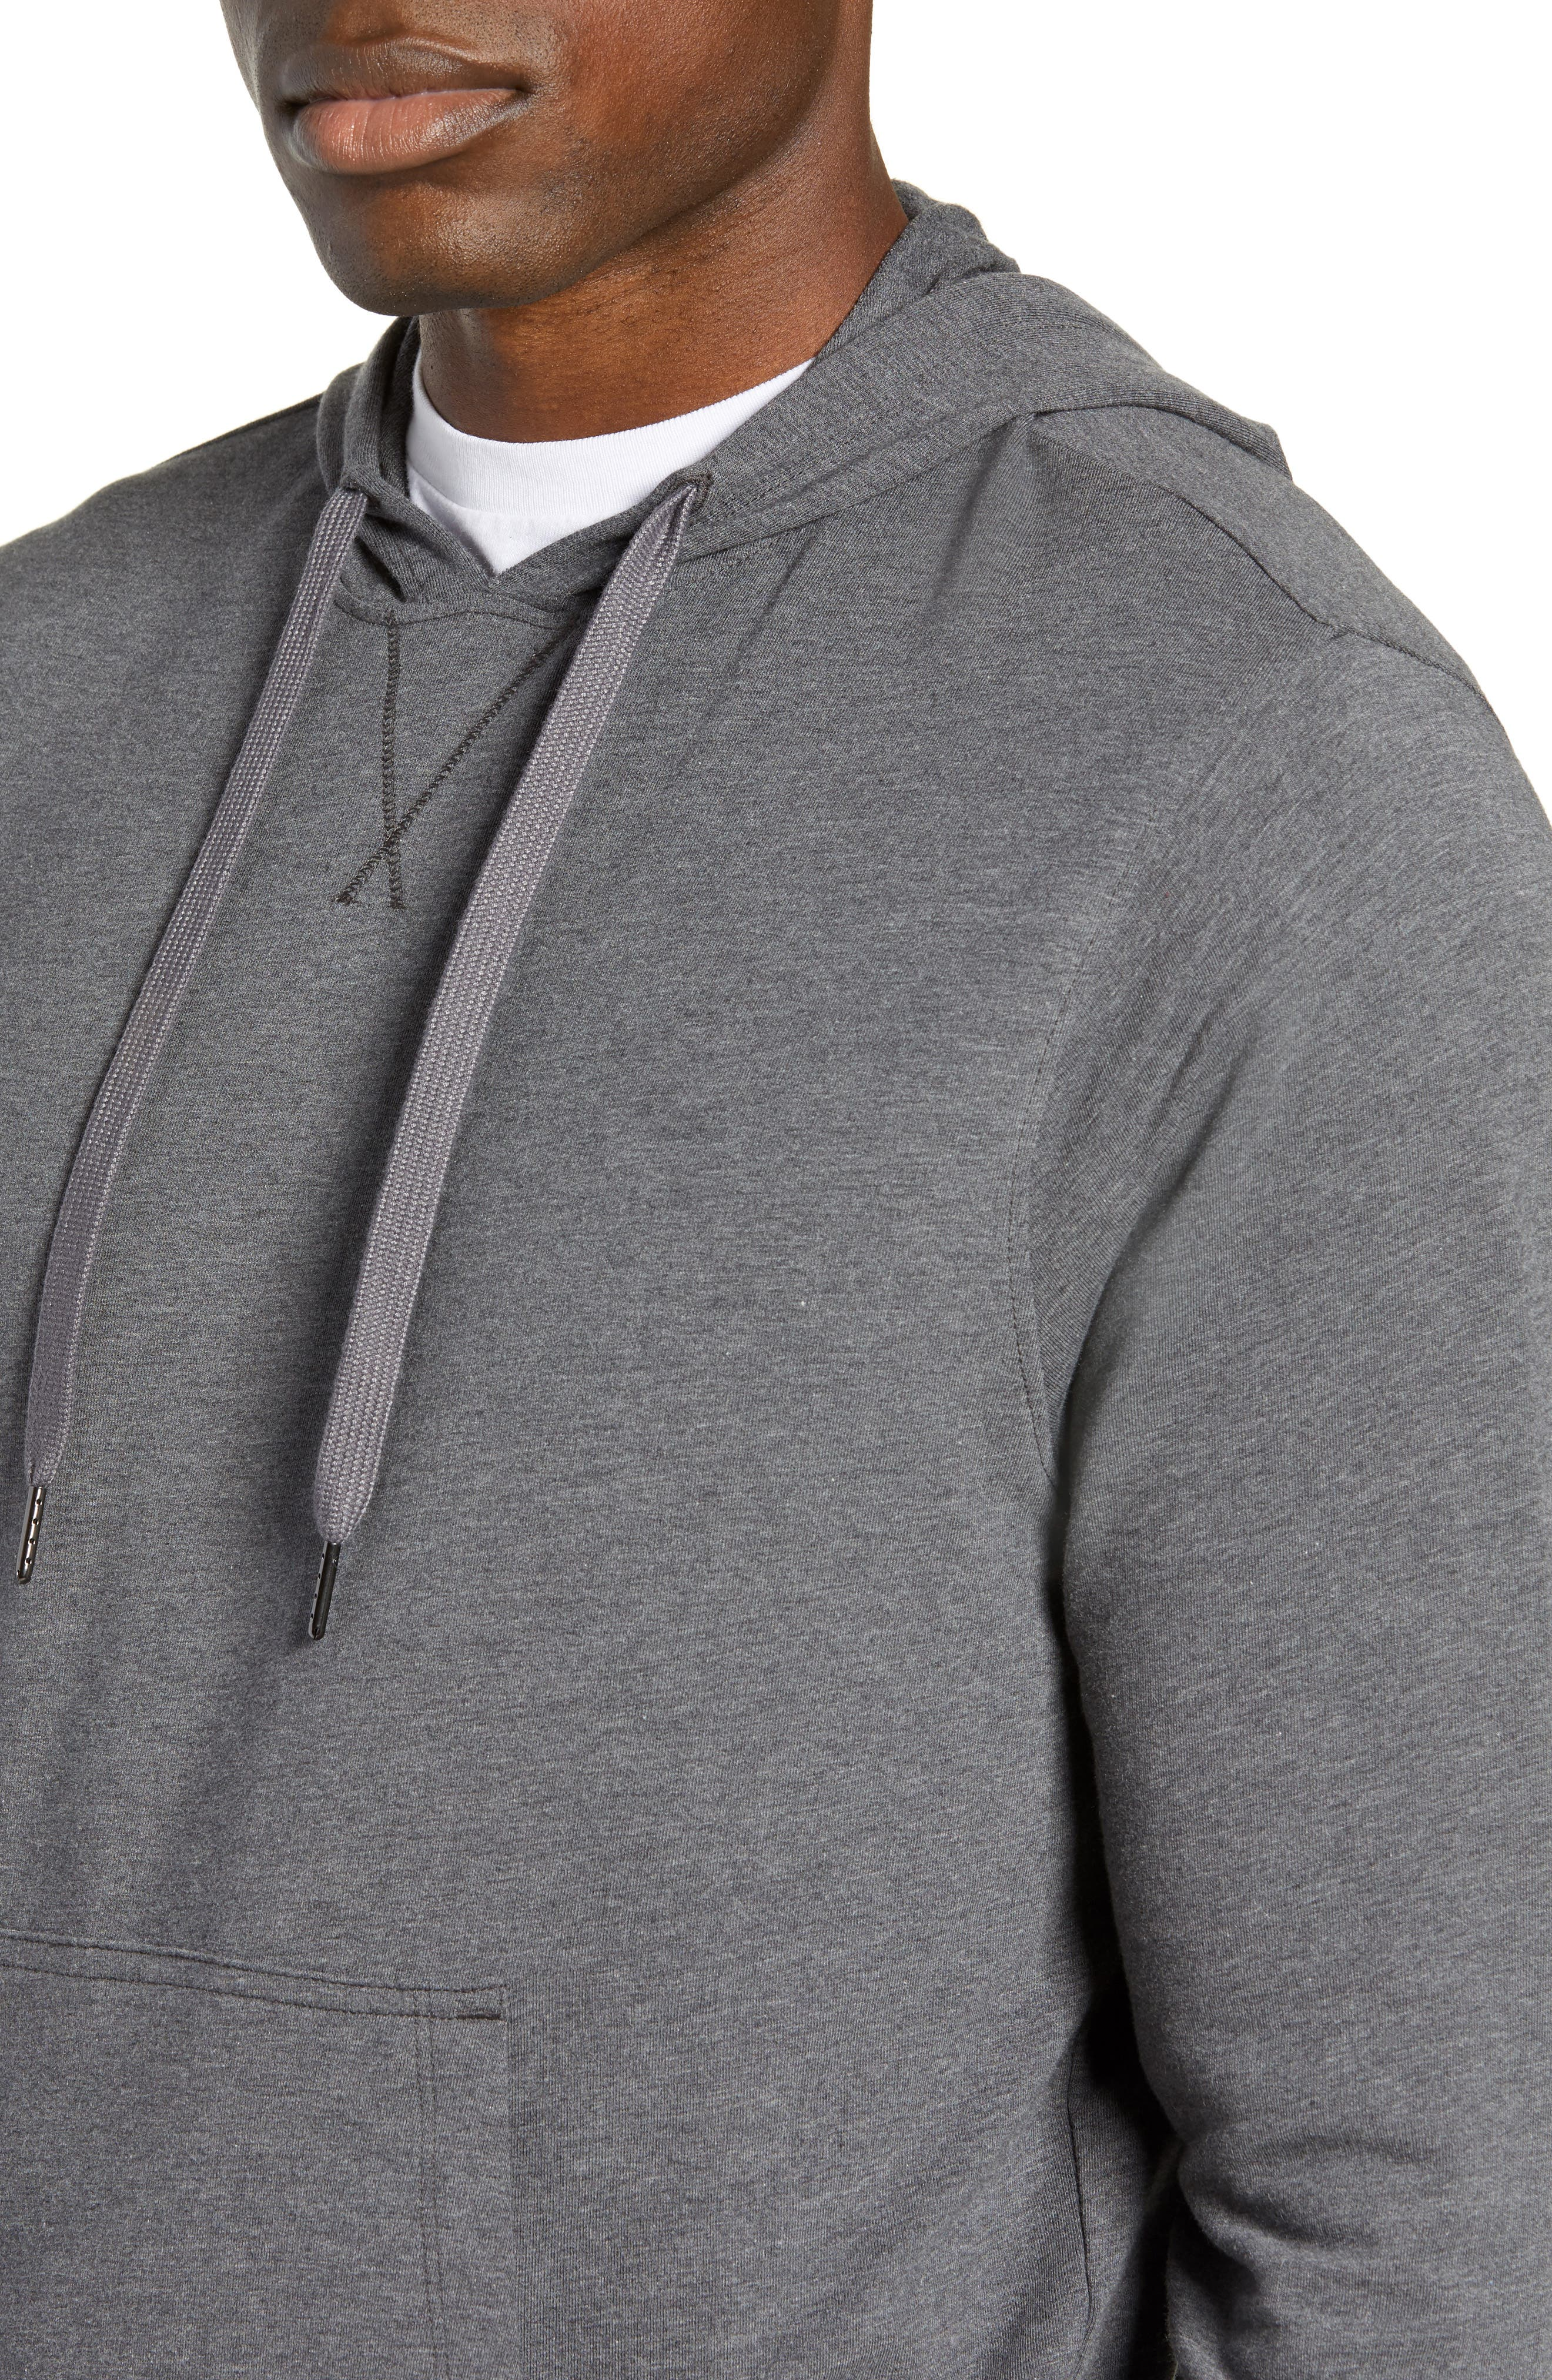 Legacy Hooded Pullover,                             Alternate thumbnail 4, color,                             BLACK